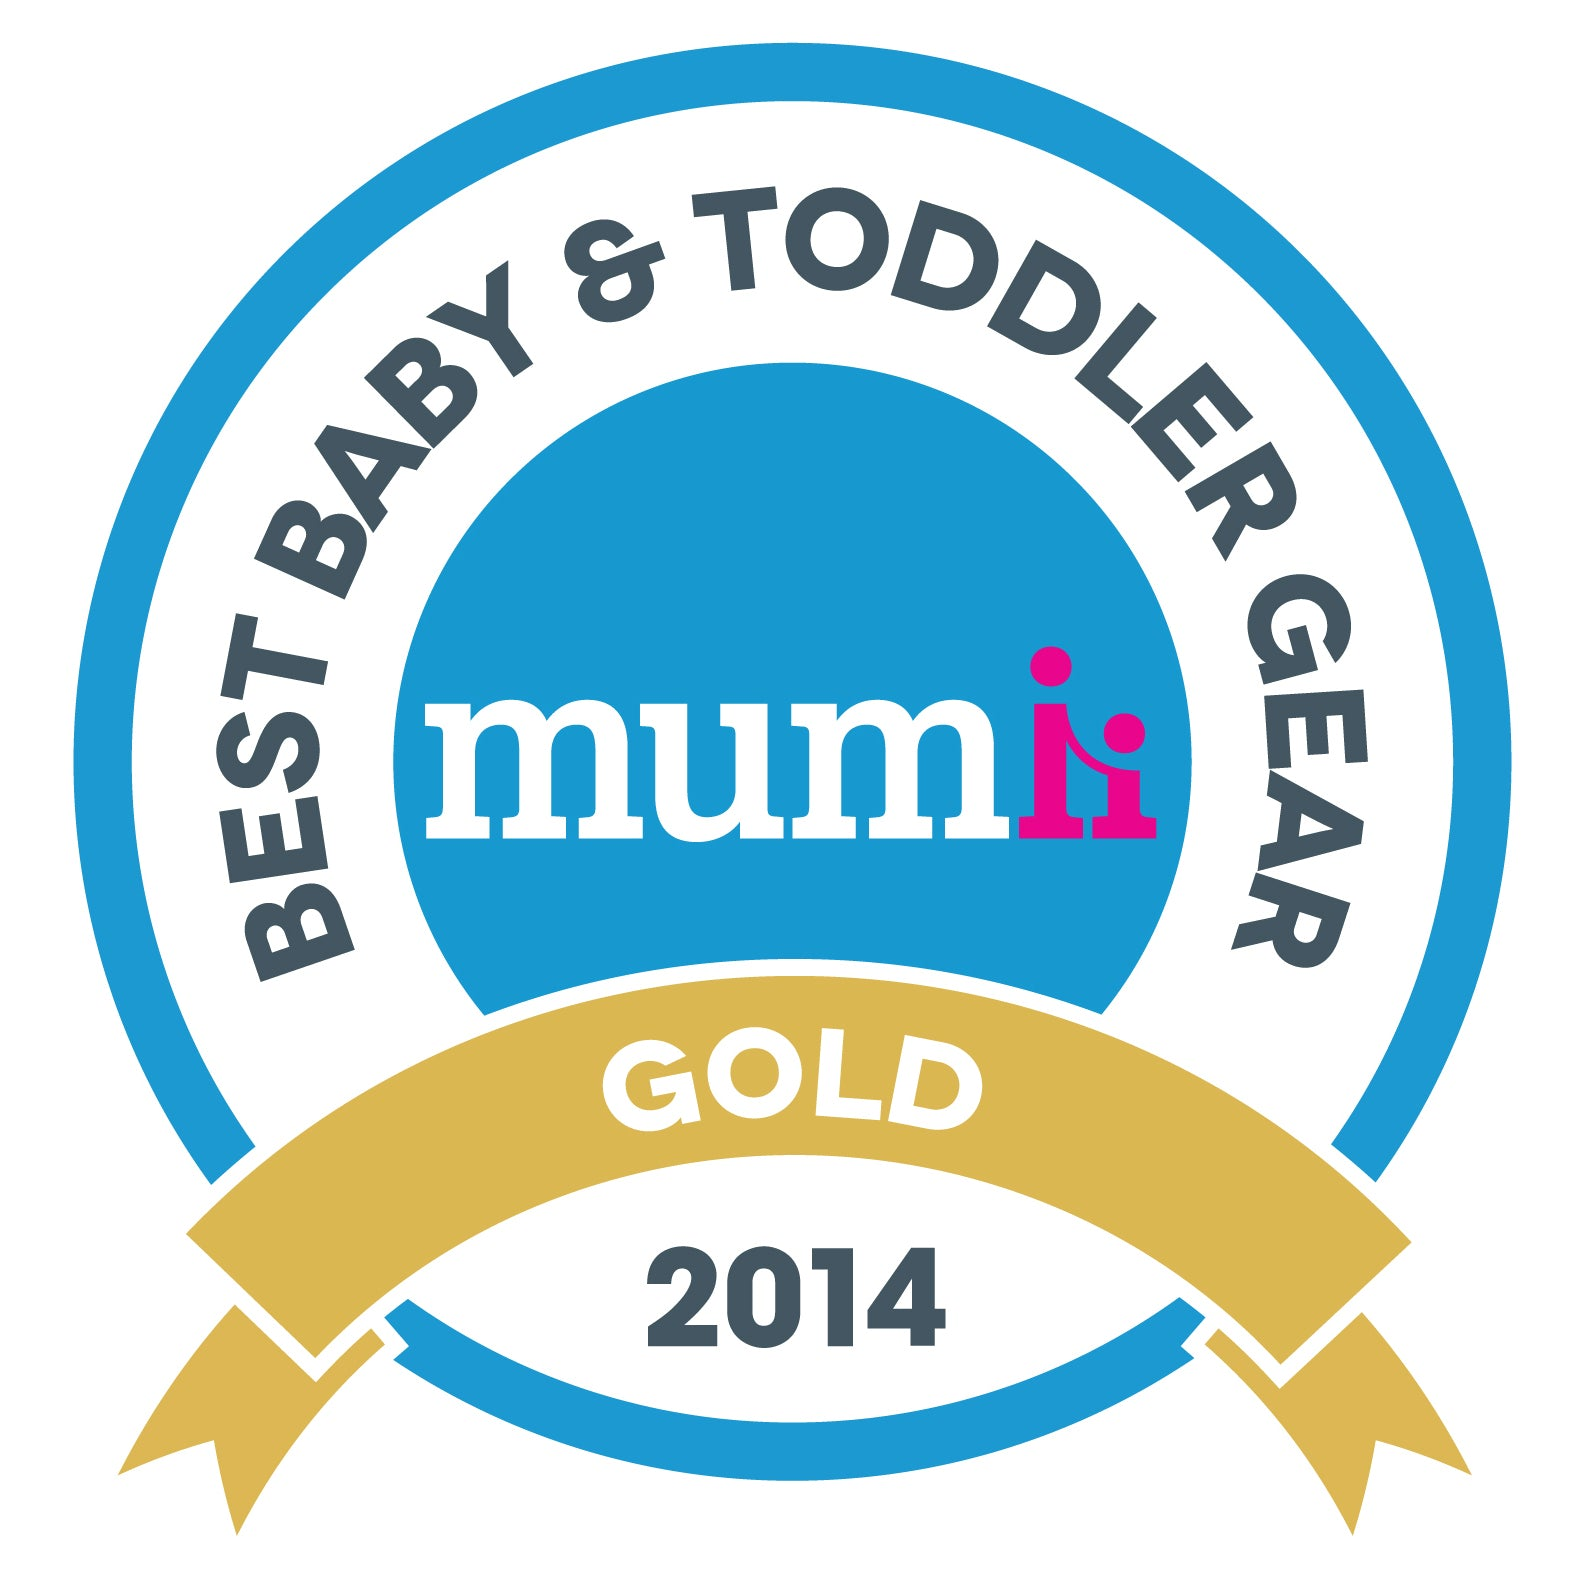 Charlie Banana® One Size Nappy - Mumii Gold Awards 2014